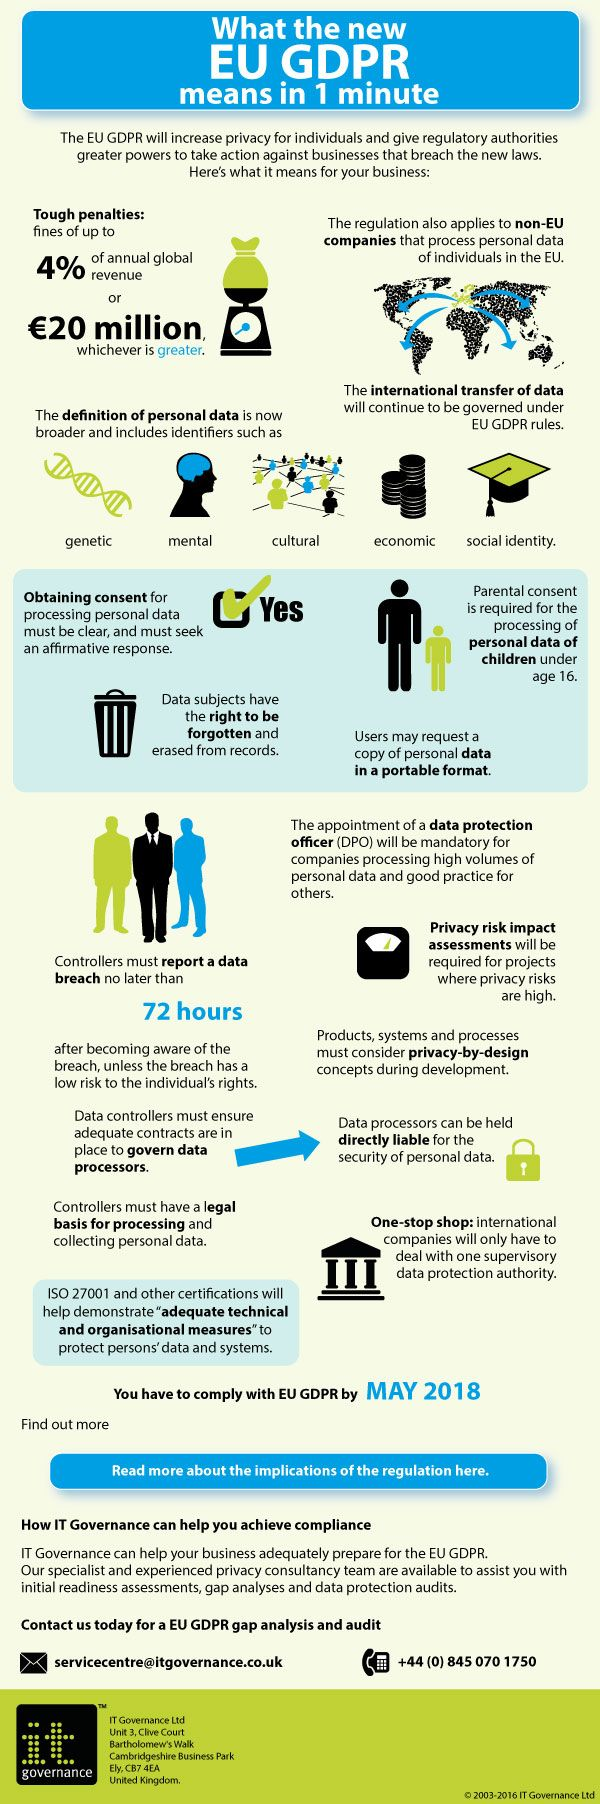 EU GDPR Infographic by IT Governance